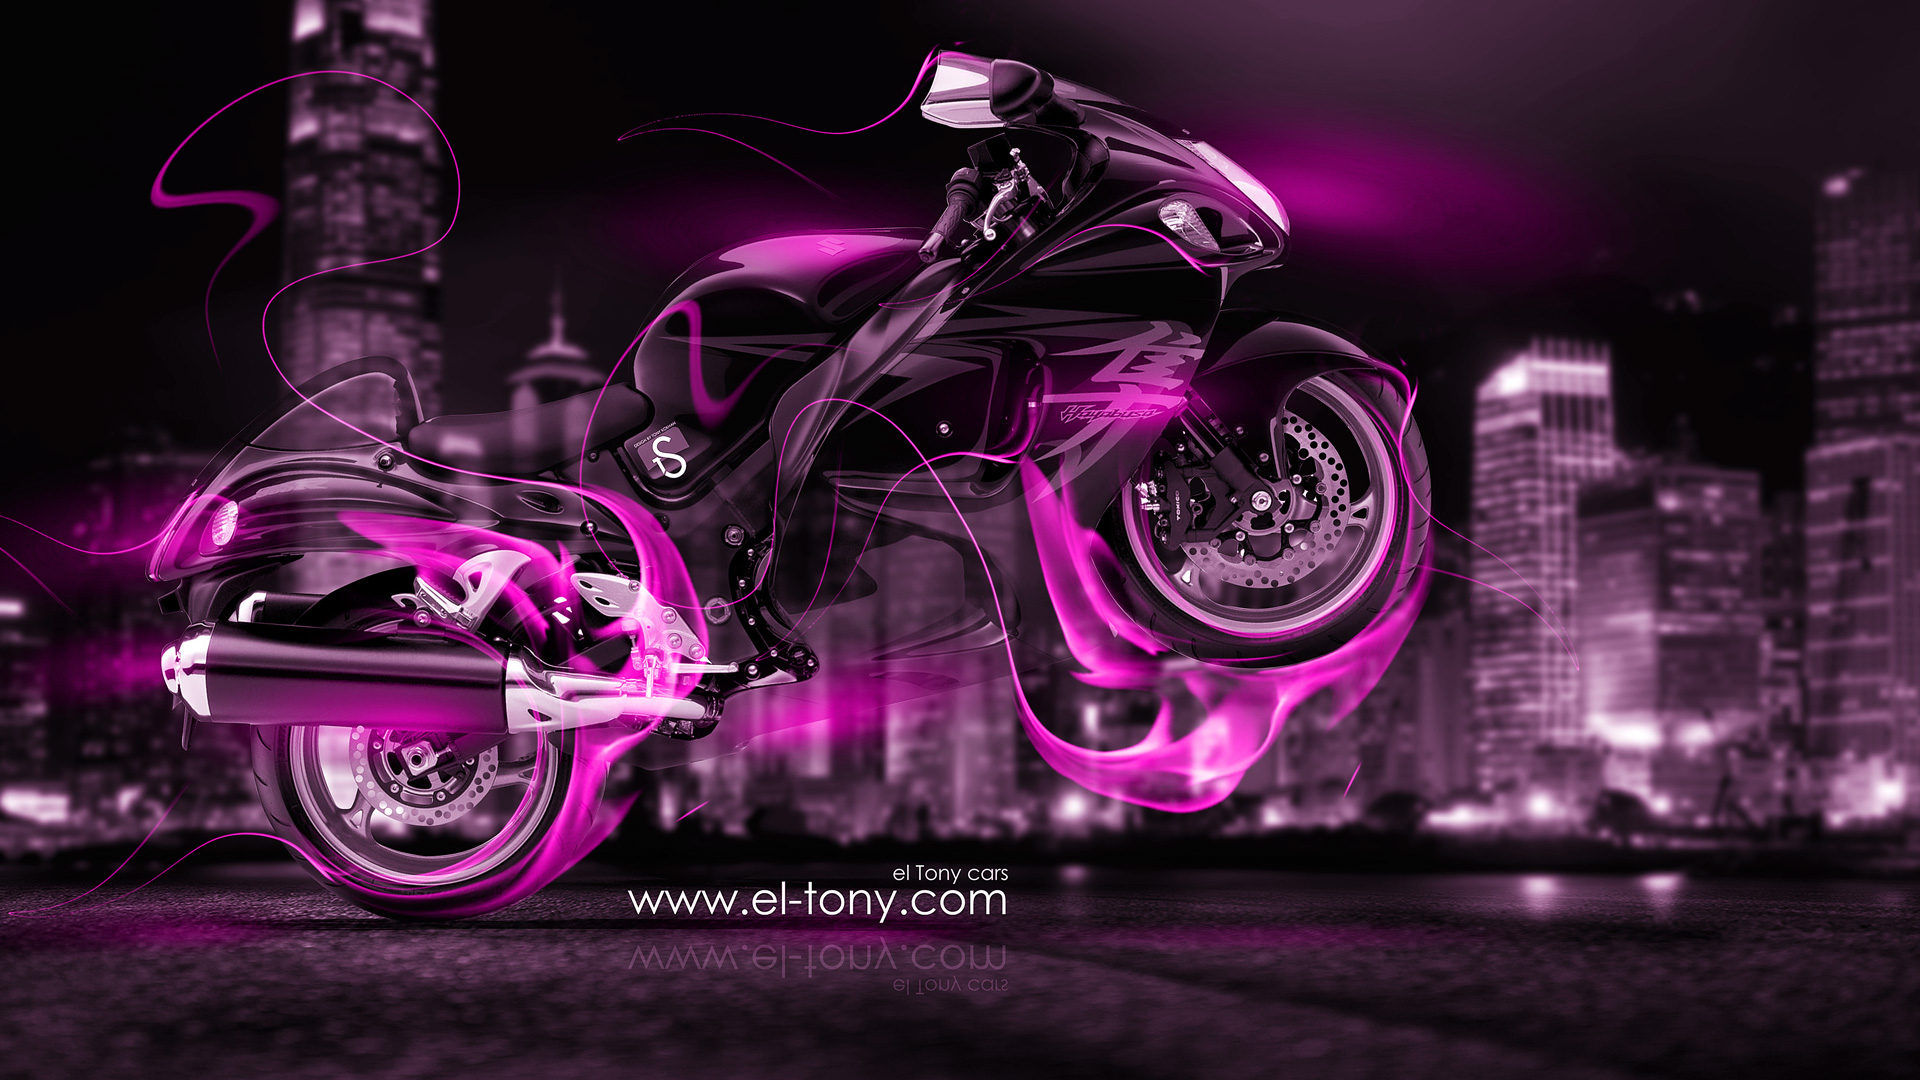 Suzuki Hayabusa Fire Crystal City Bike 2014 | el Tony